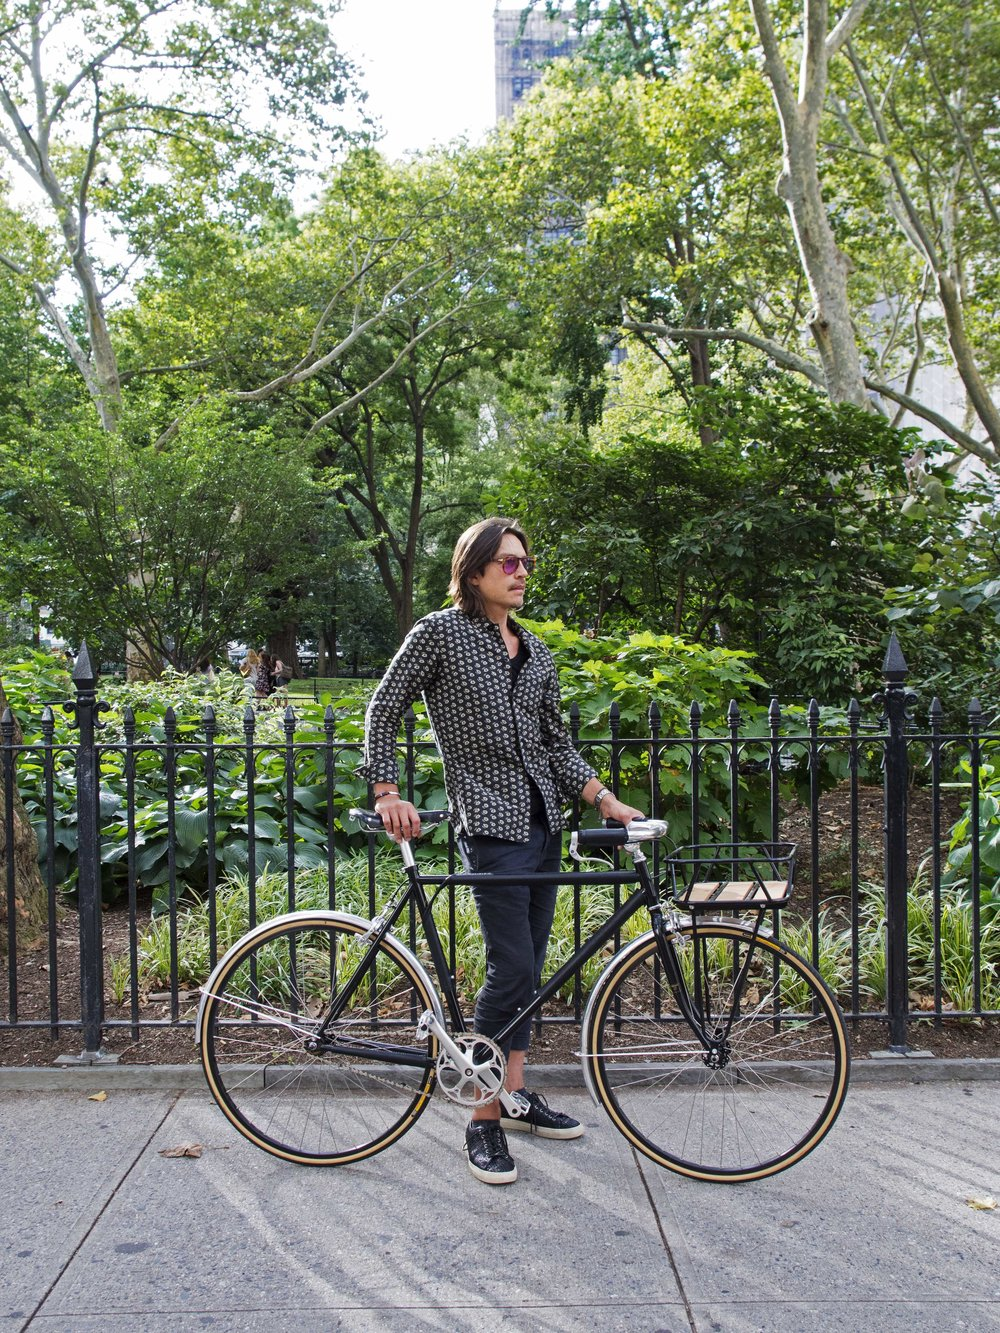 Men's black bike Madison Square Park spring New York city